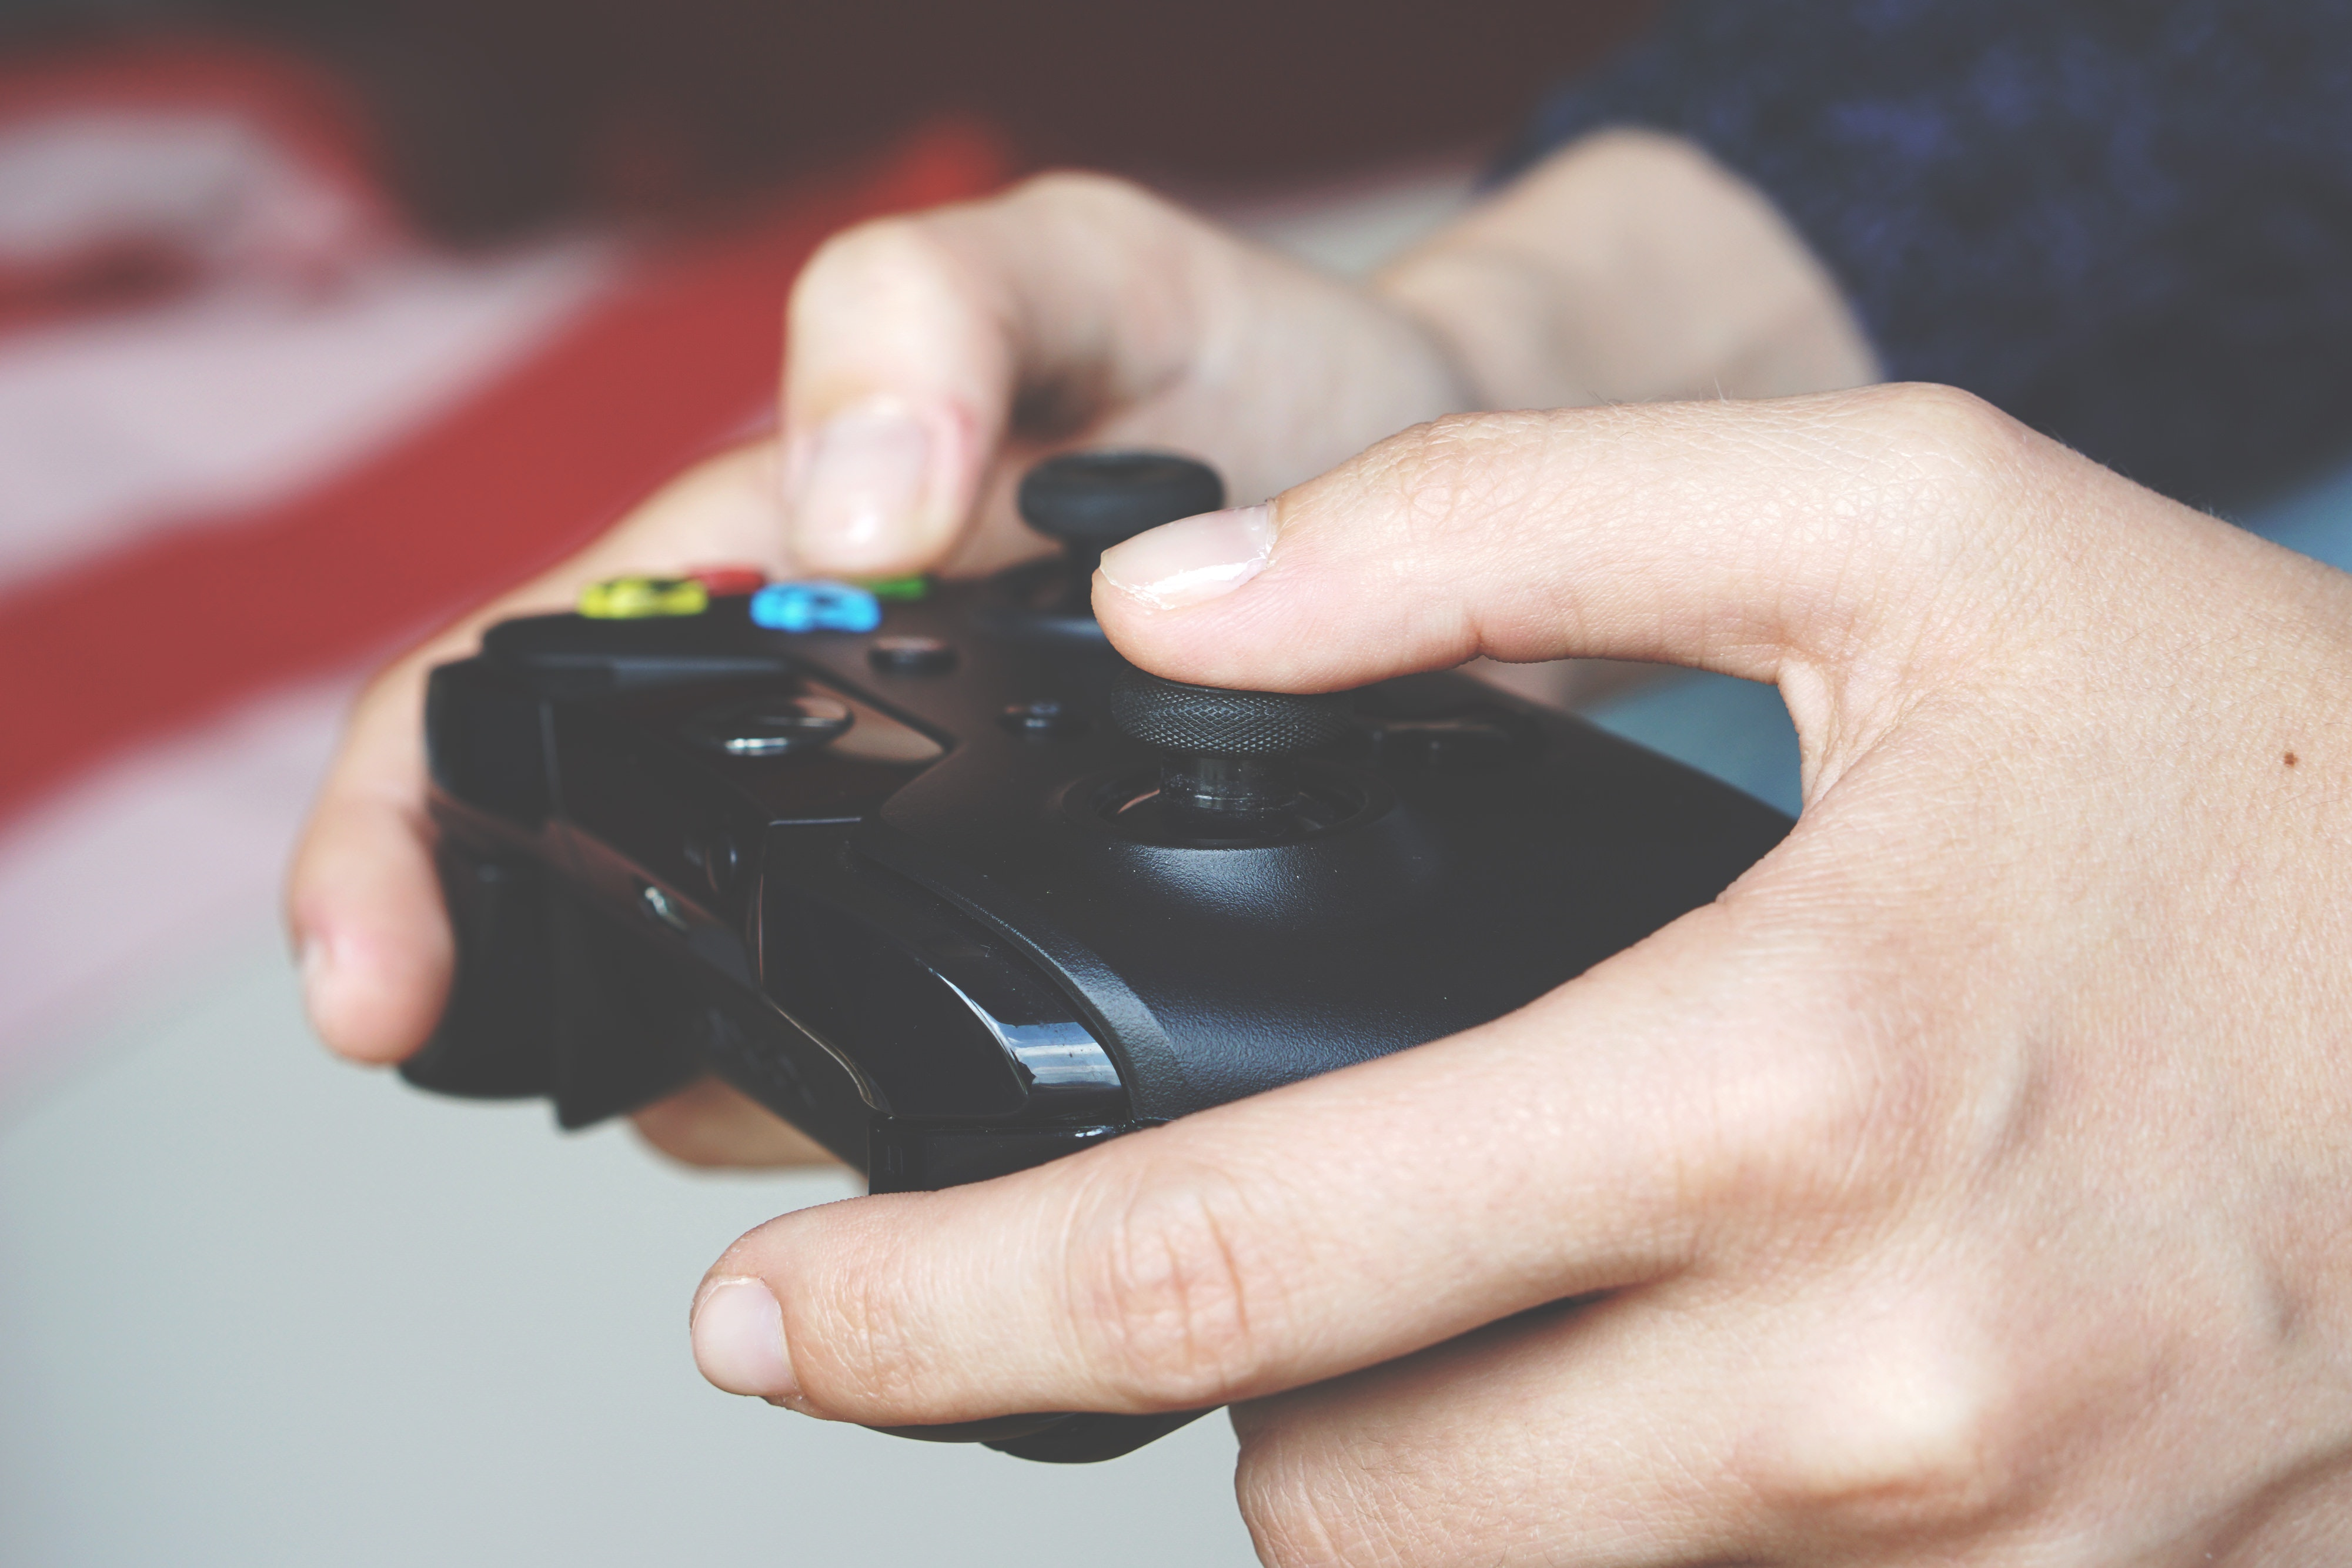 A person's hands holding an Xbox One controller, pressing the left trigger and A button simultaneously